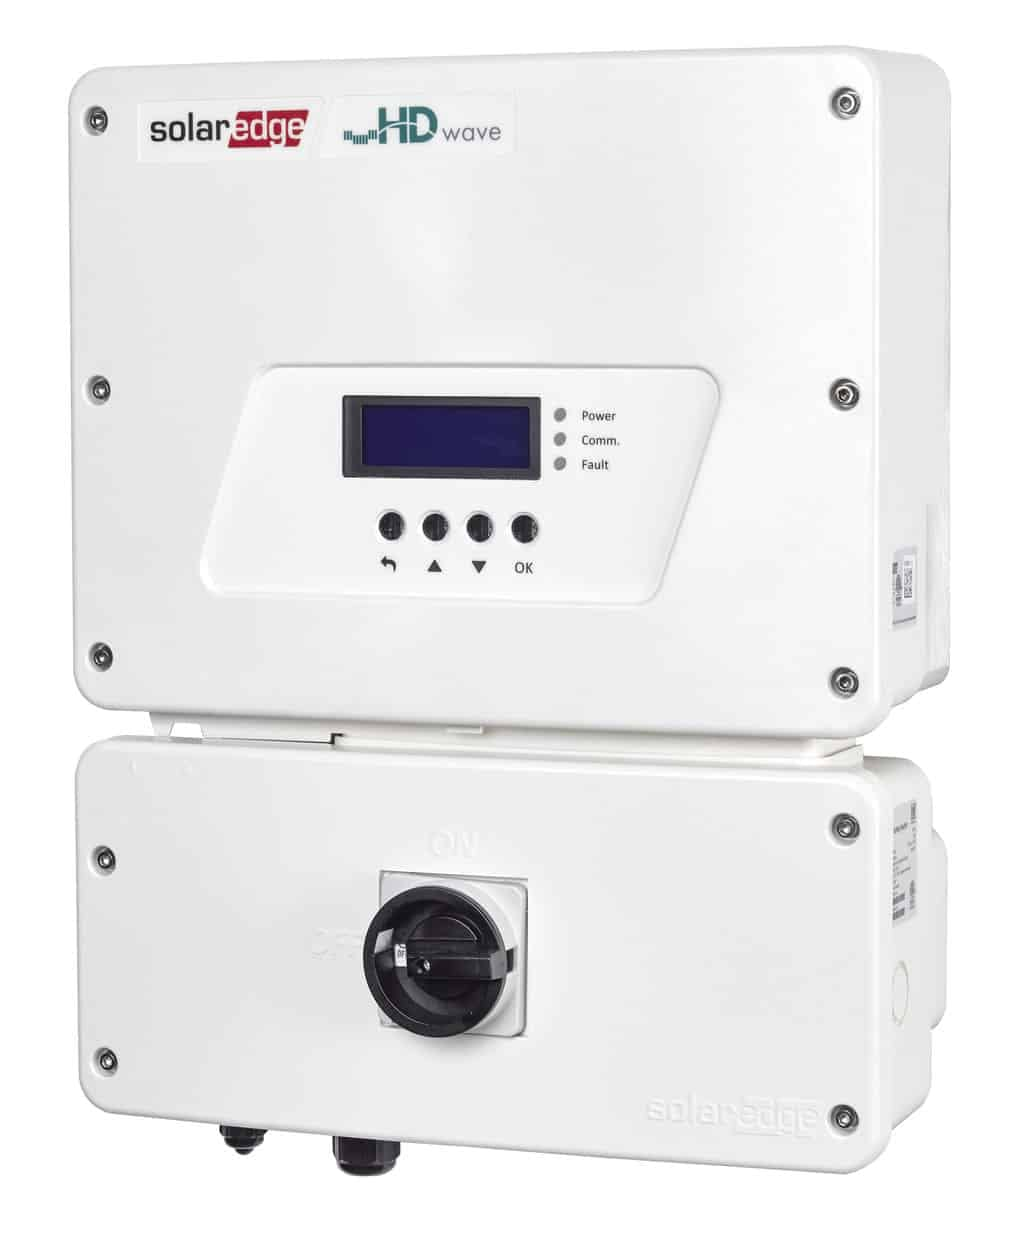 SolarEdge SE7600H HD-Wave Inverter